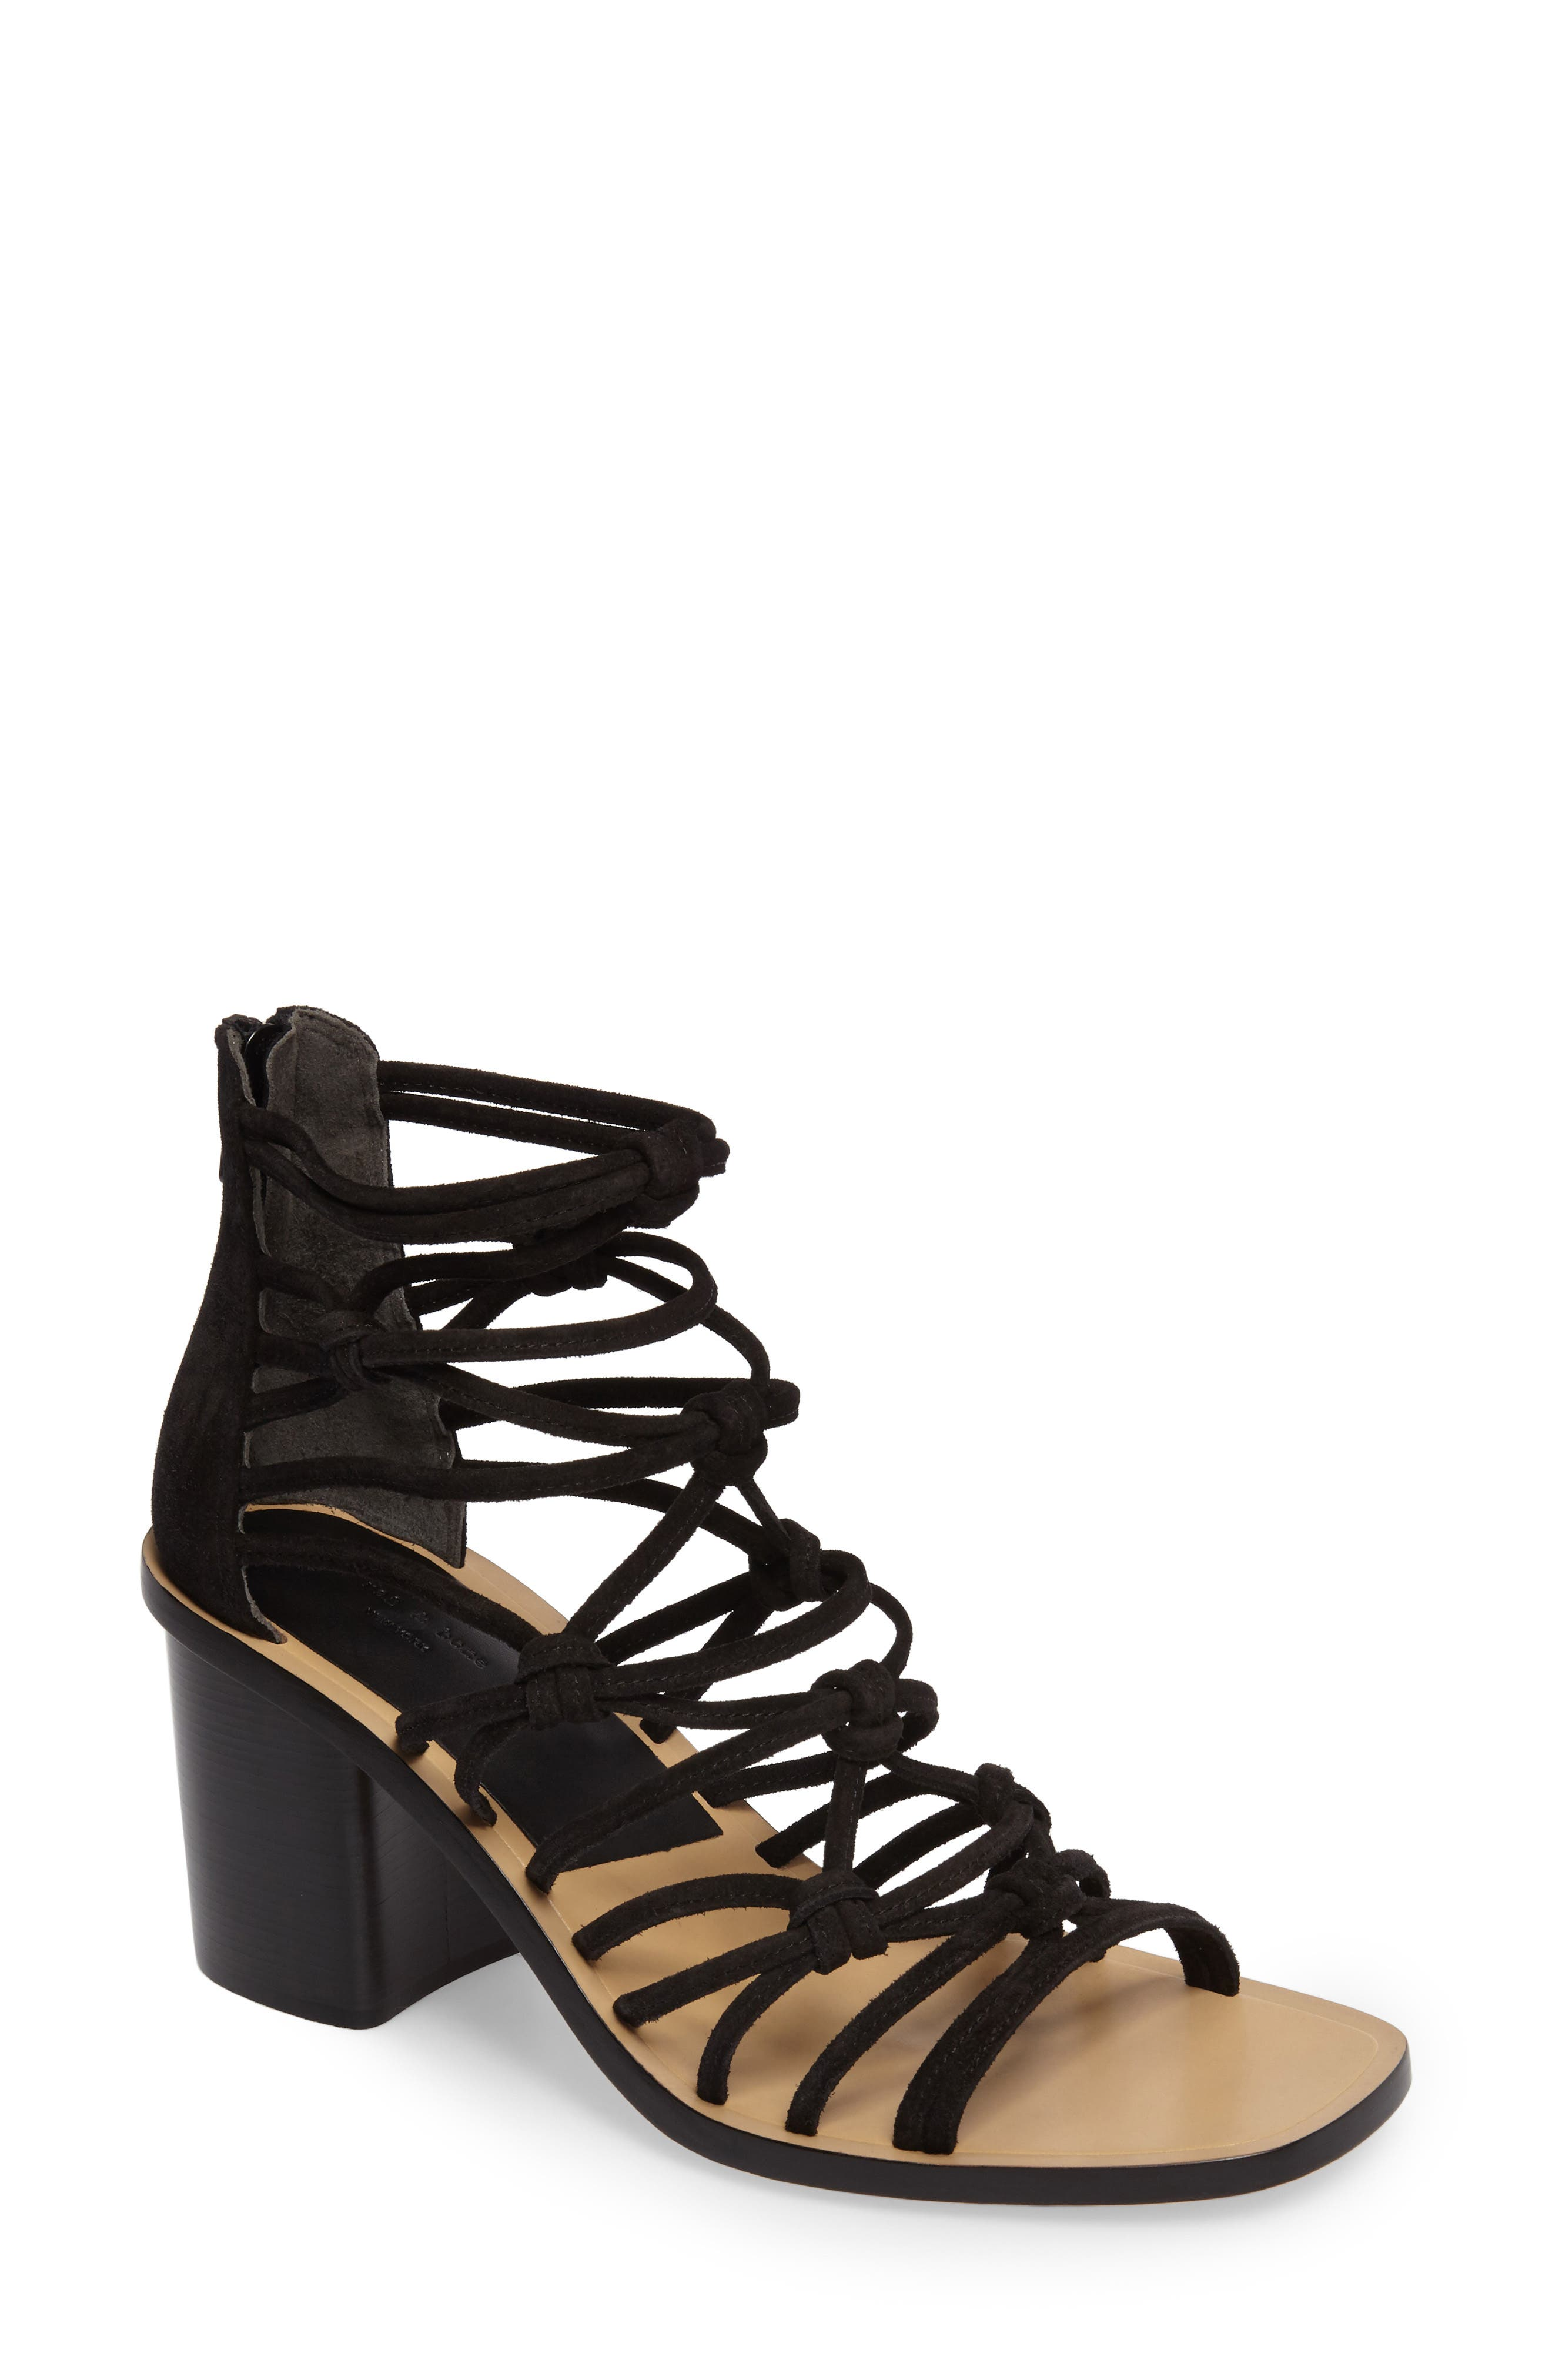 Camille Knotted Strappy Sandal,                             Main thumbnail 1, color,                             008